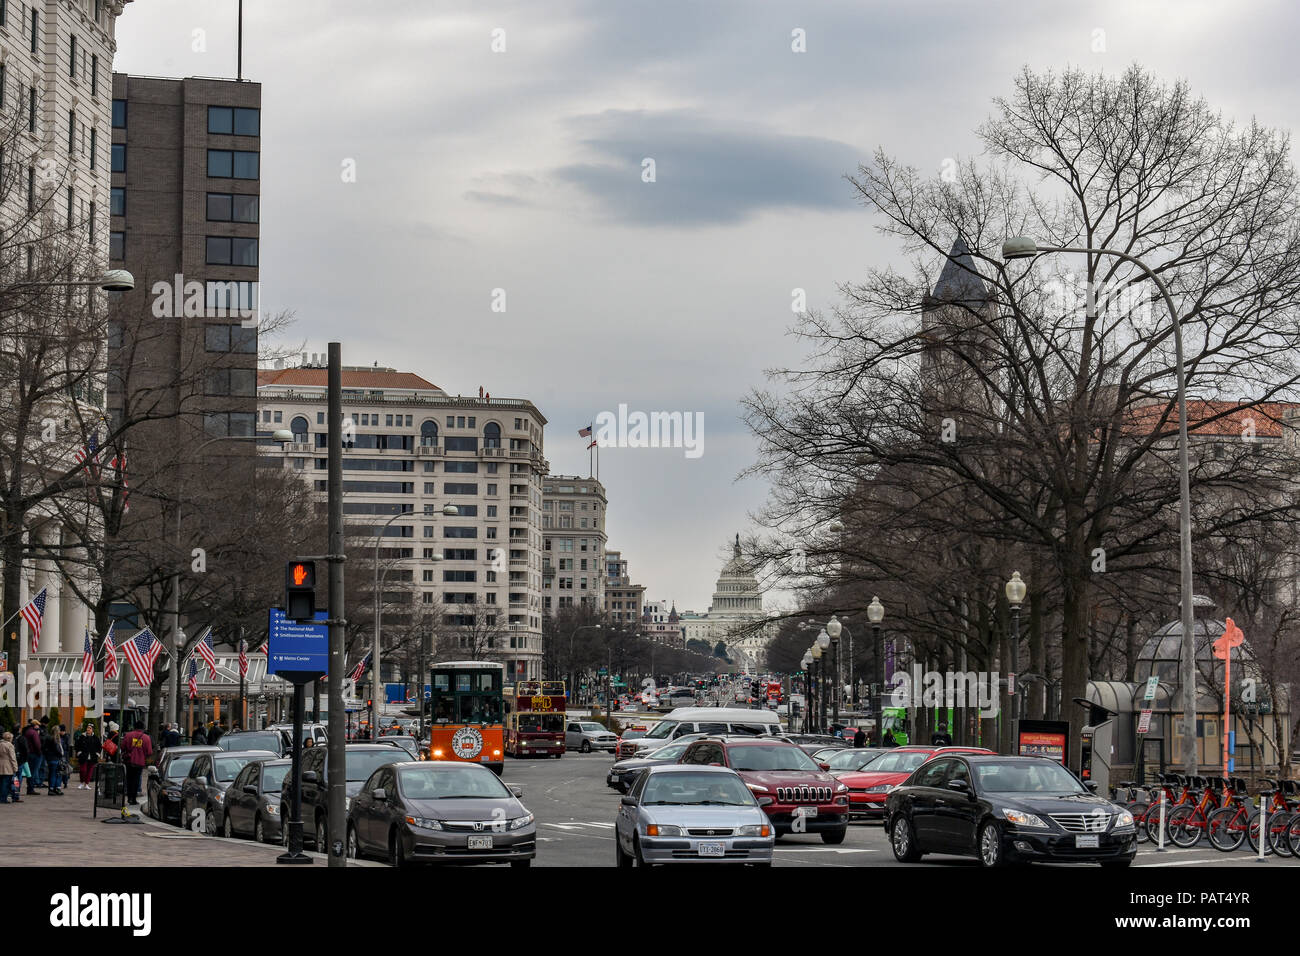 Commotion of the United States Capitol building - Stock Image